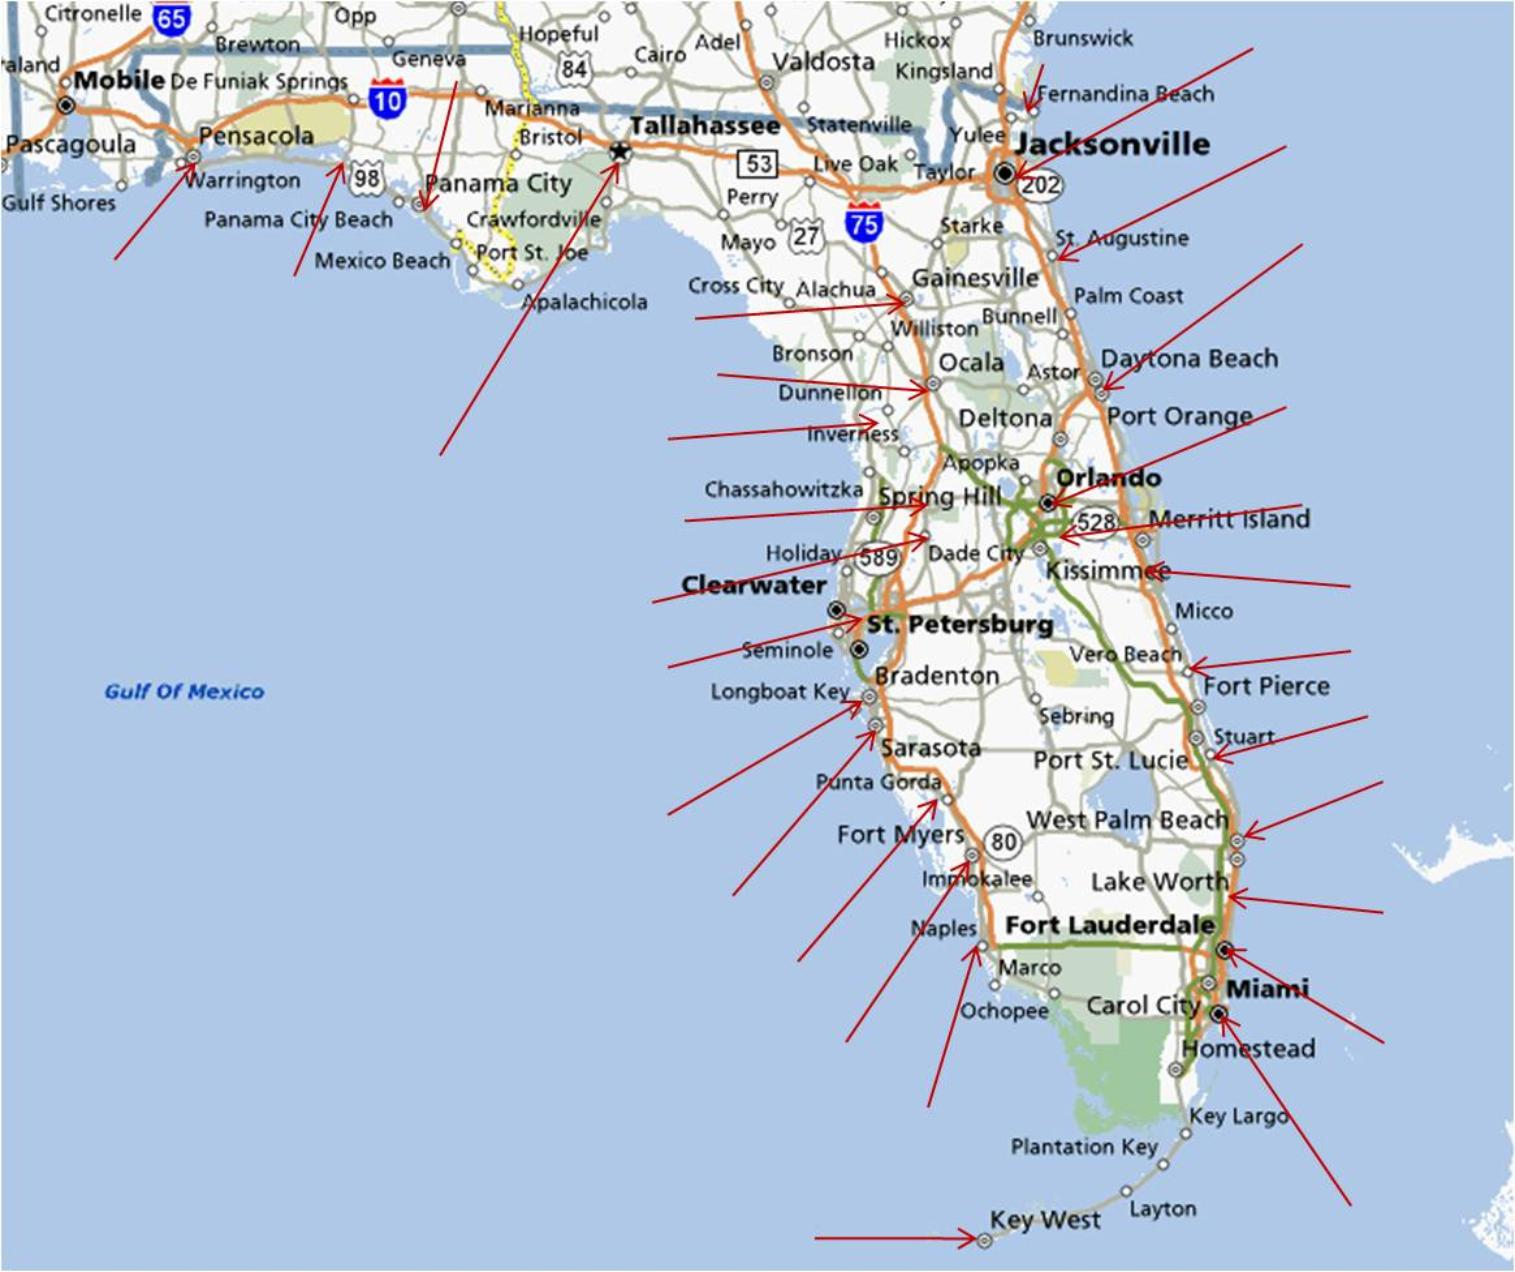 map of florida panhandle beaches with Images Search Map Of Florida Gulf Coast Type Images on Image7 additionally Floridabeachlocations moreover LocationPhotos G34578 Port Saint Joe Florida in addition FL Northwest further floridasprings.